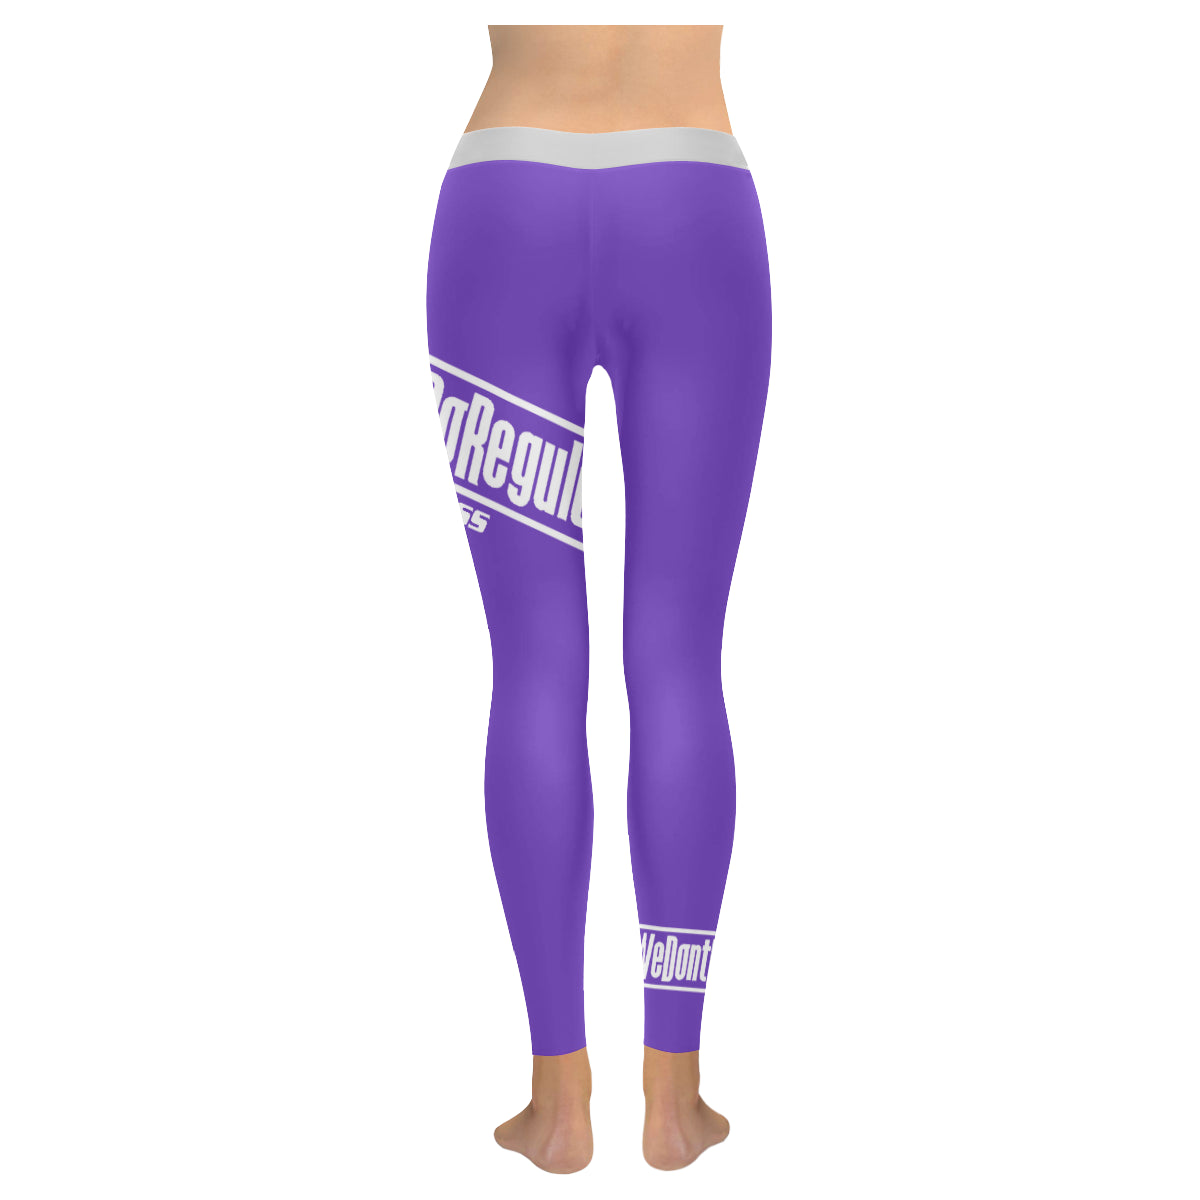 WddR KD Leggings